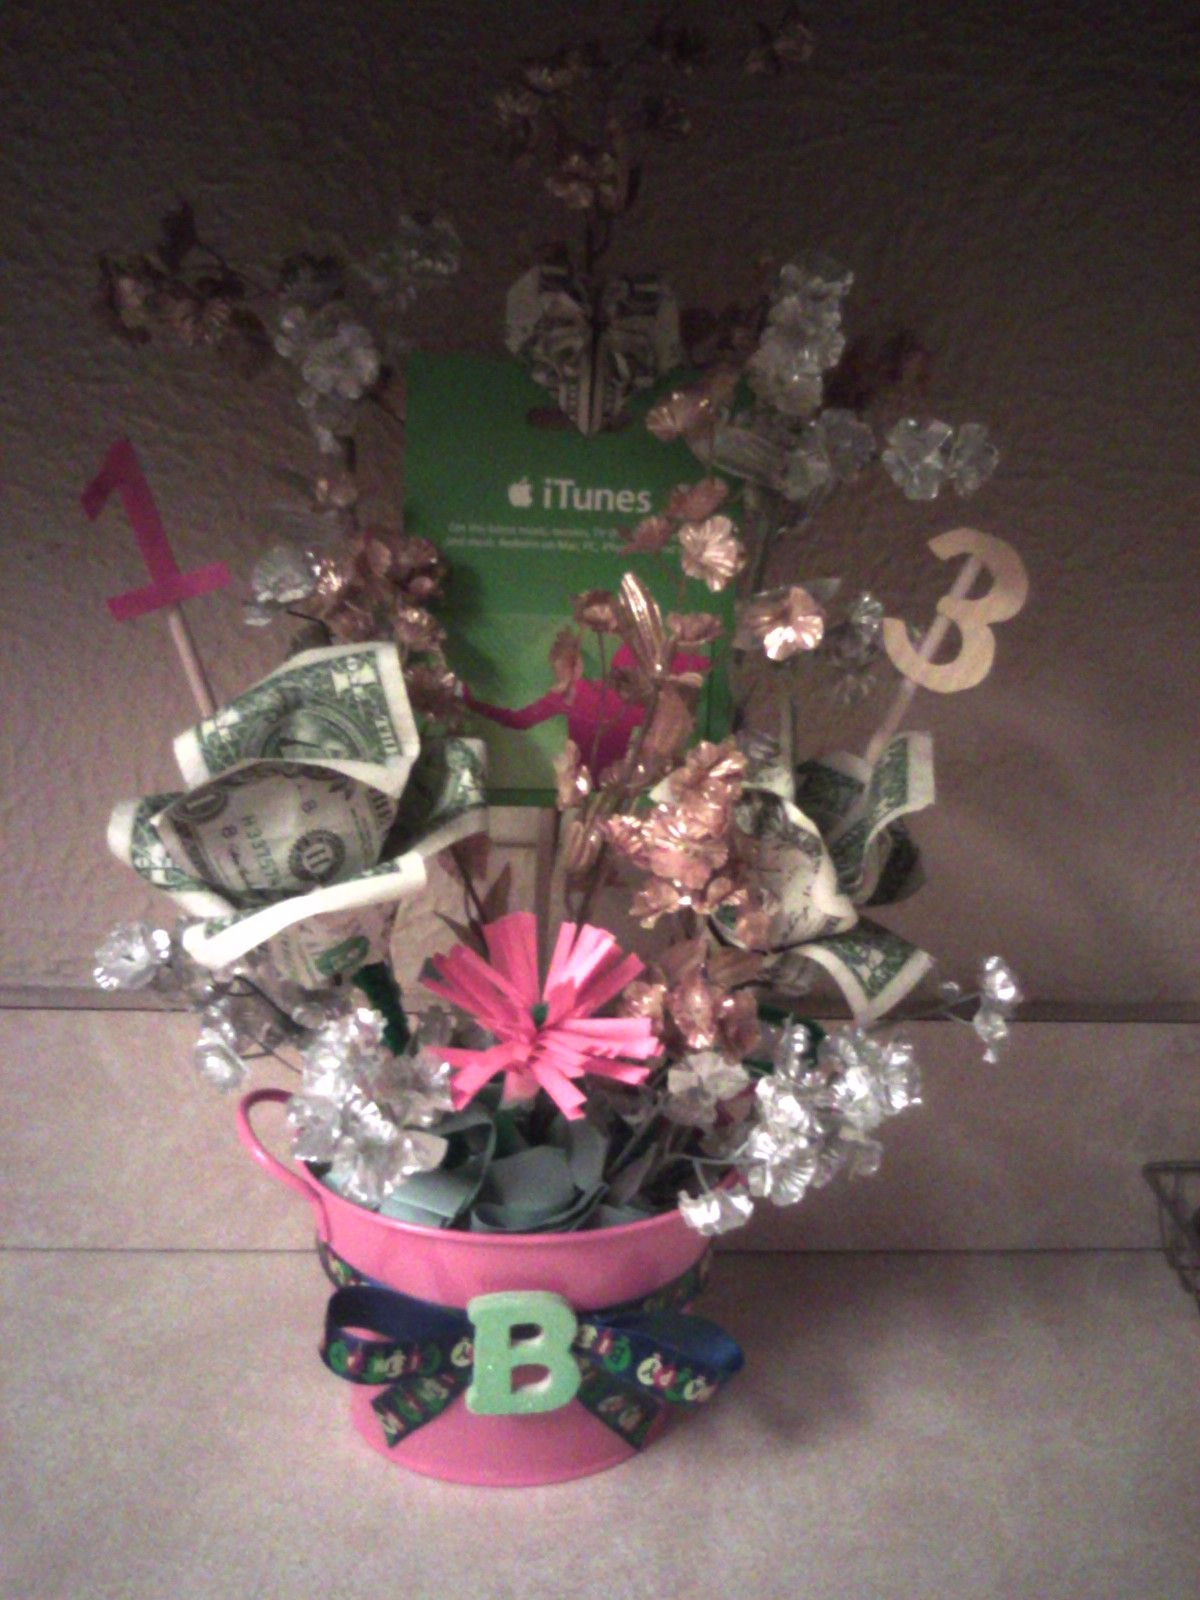 Used a variety of things I found on pinterest to create a b-day basket for my daughter's 13th birthday!